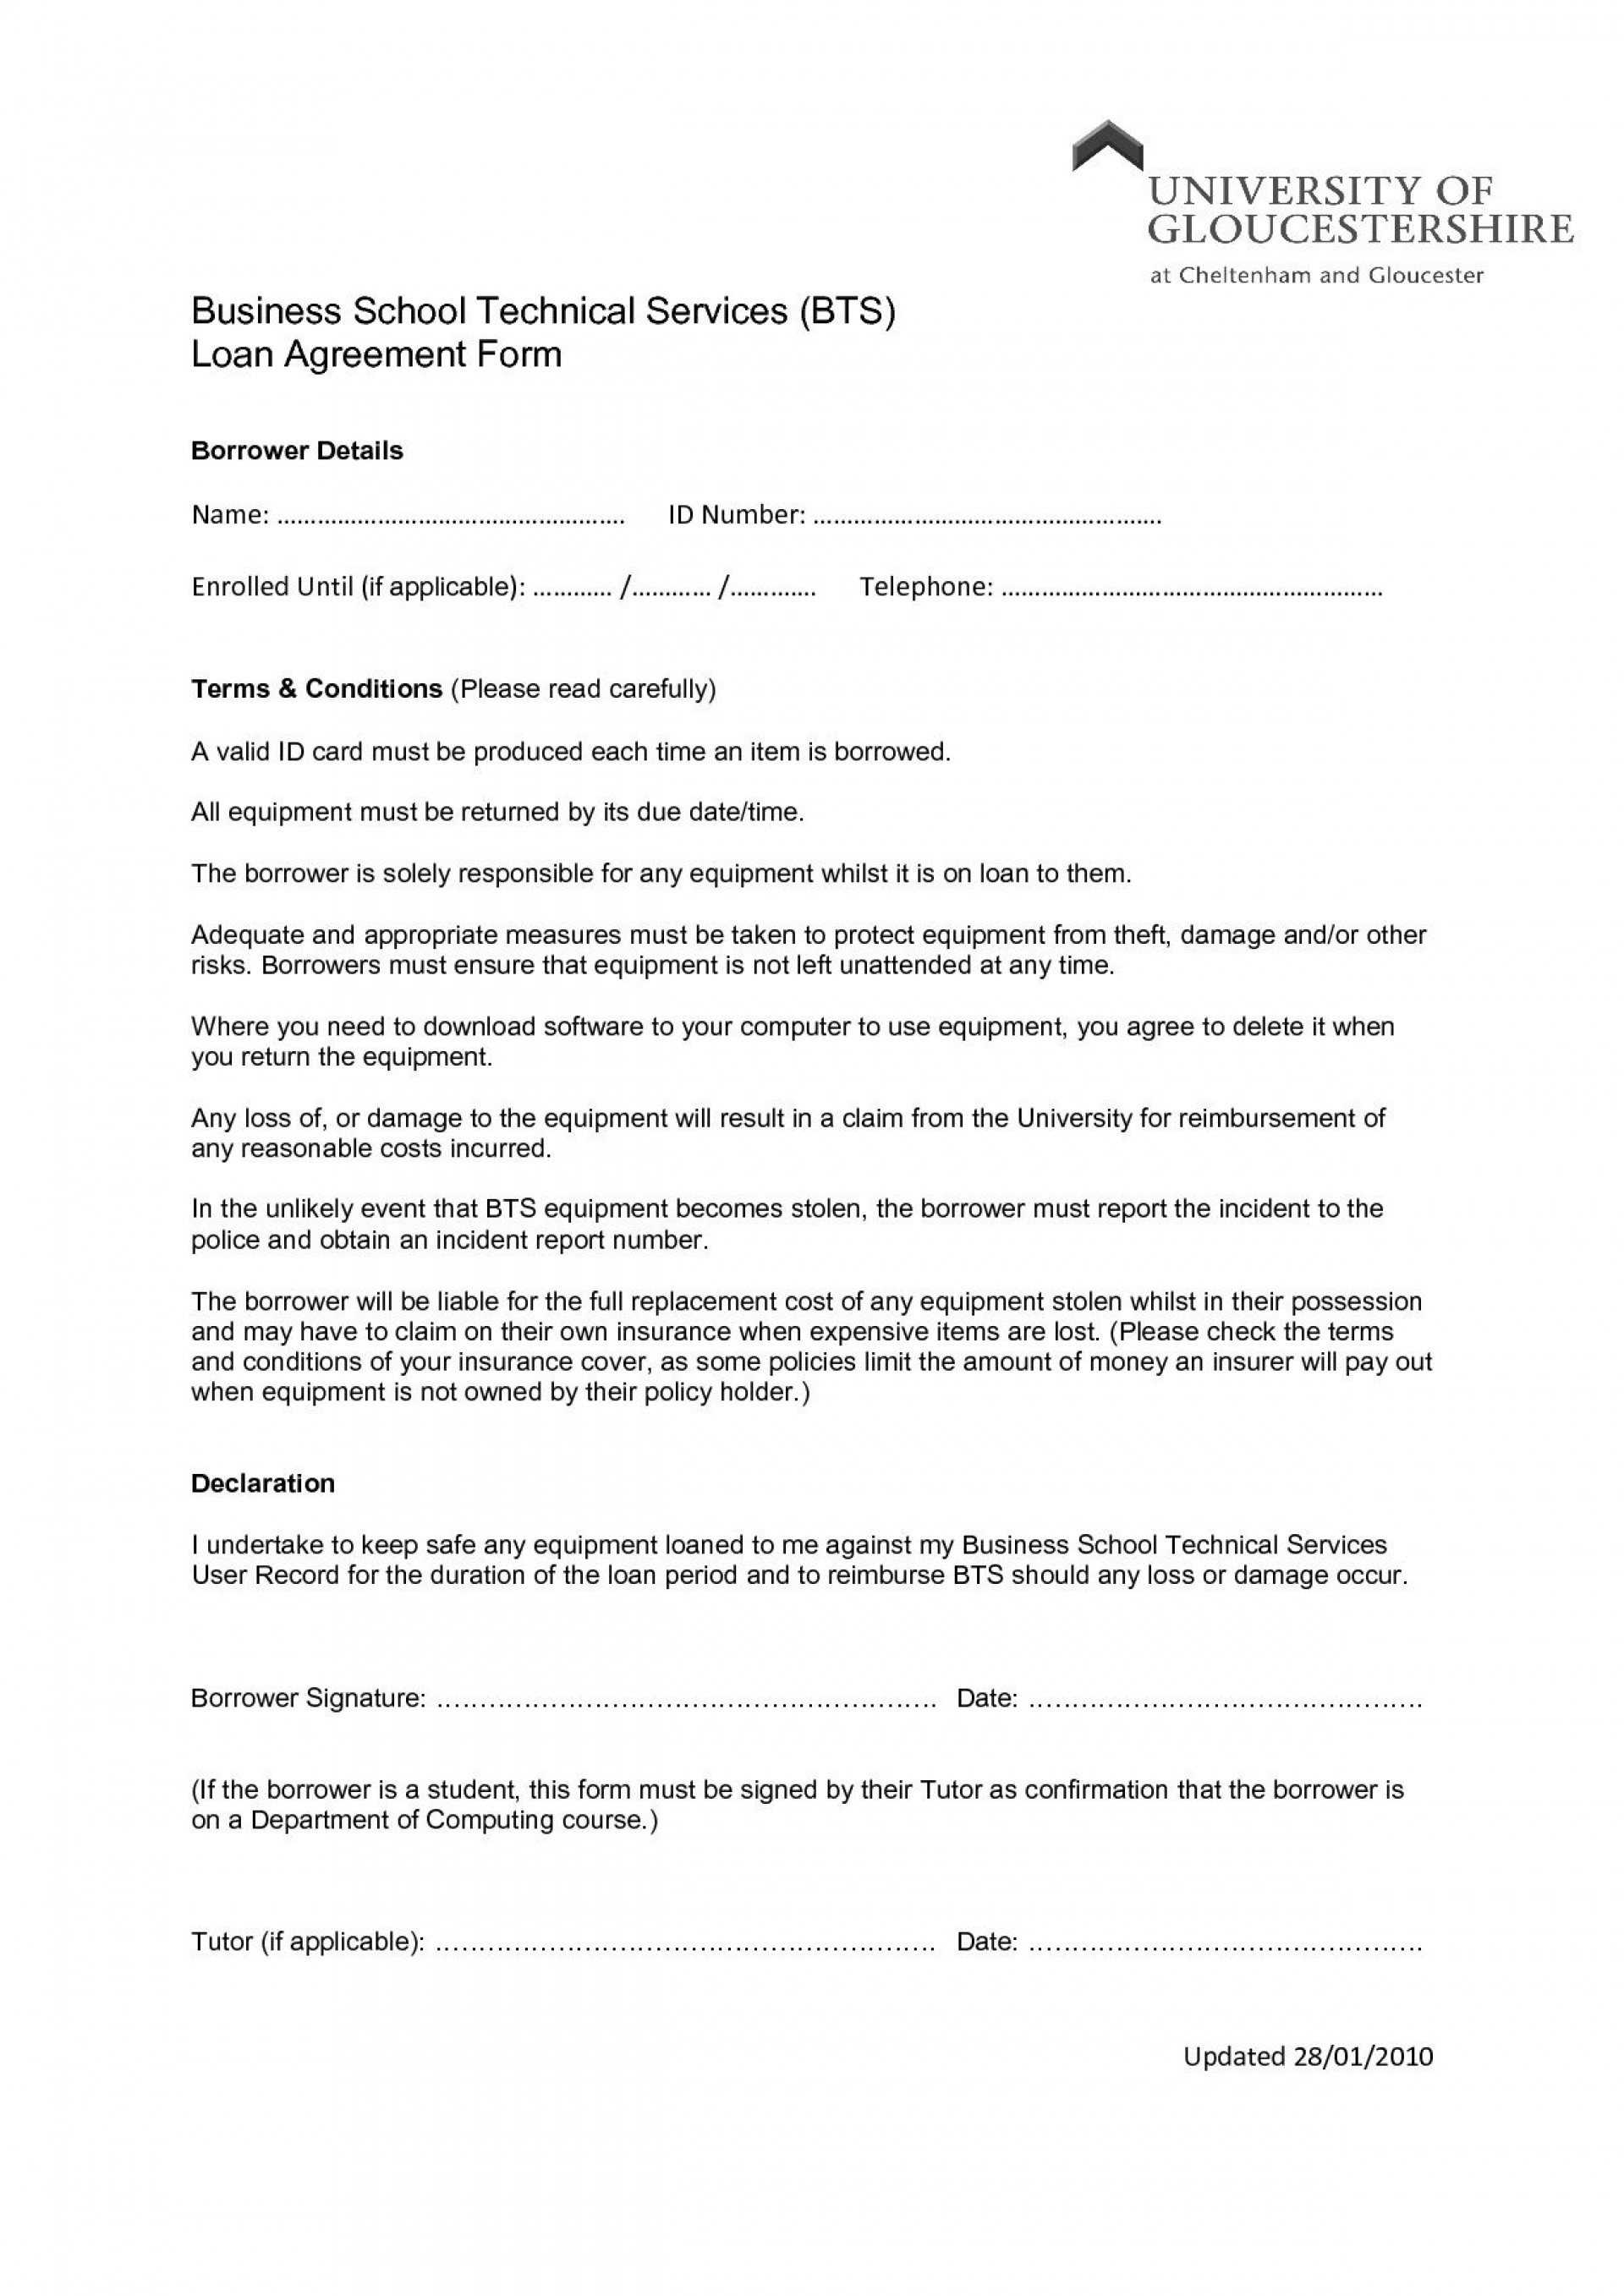 003 Excellent Equipment Loan Agreement Template Concept  Simple Uk Borrowing Free1920